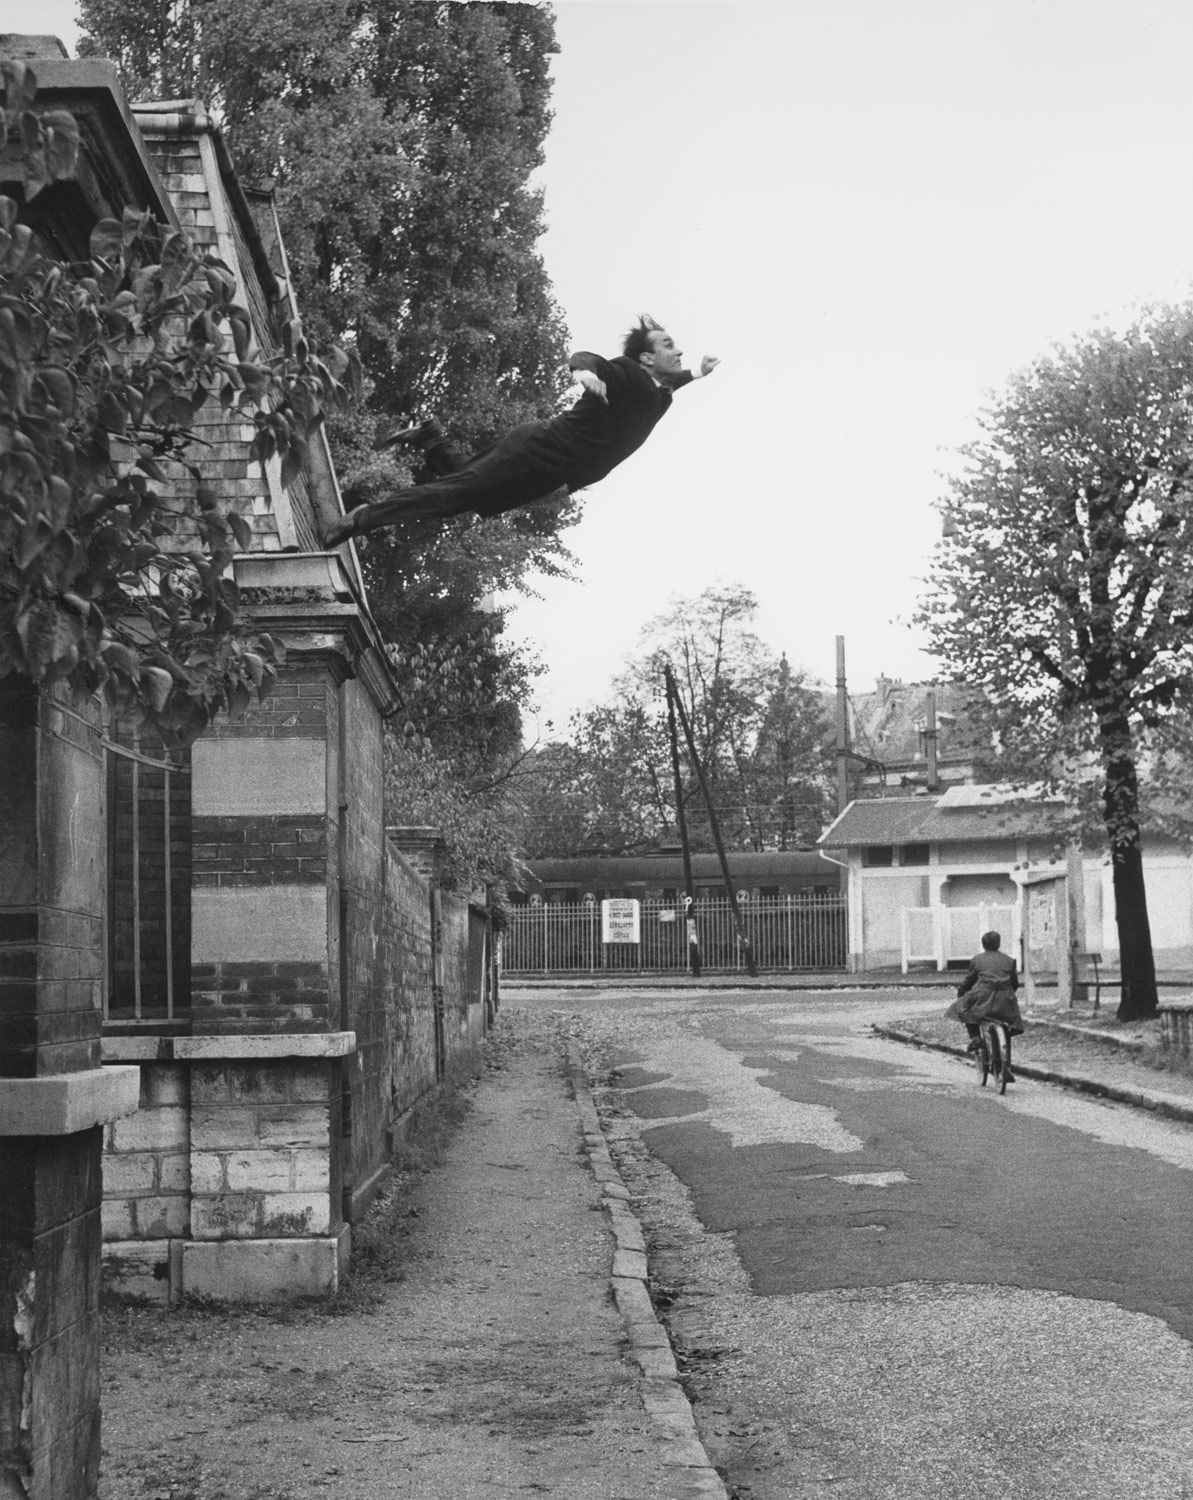 """Leap into the Void"", artistic action by Yves Klein, photographed by Harry Shunk and János Kender, 1960"